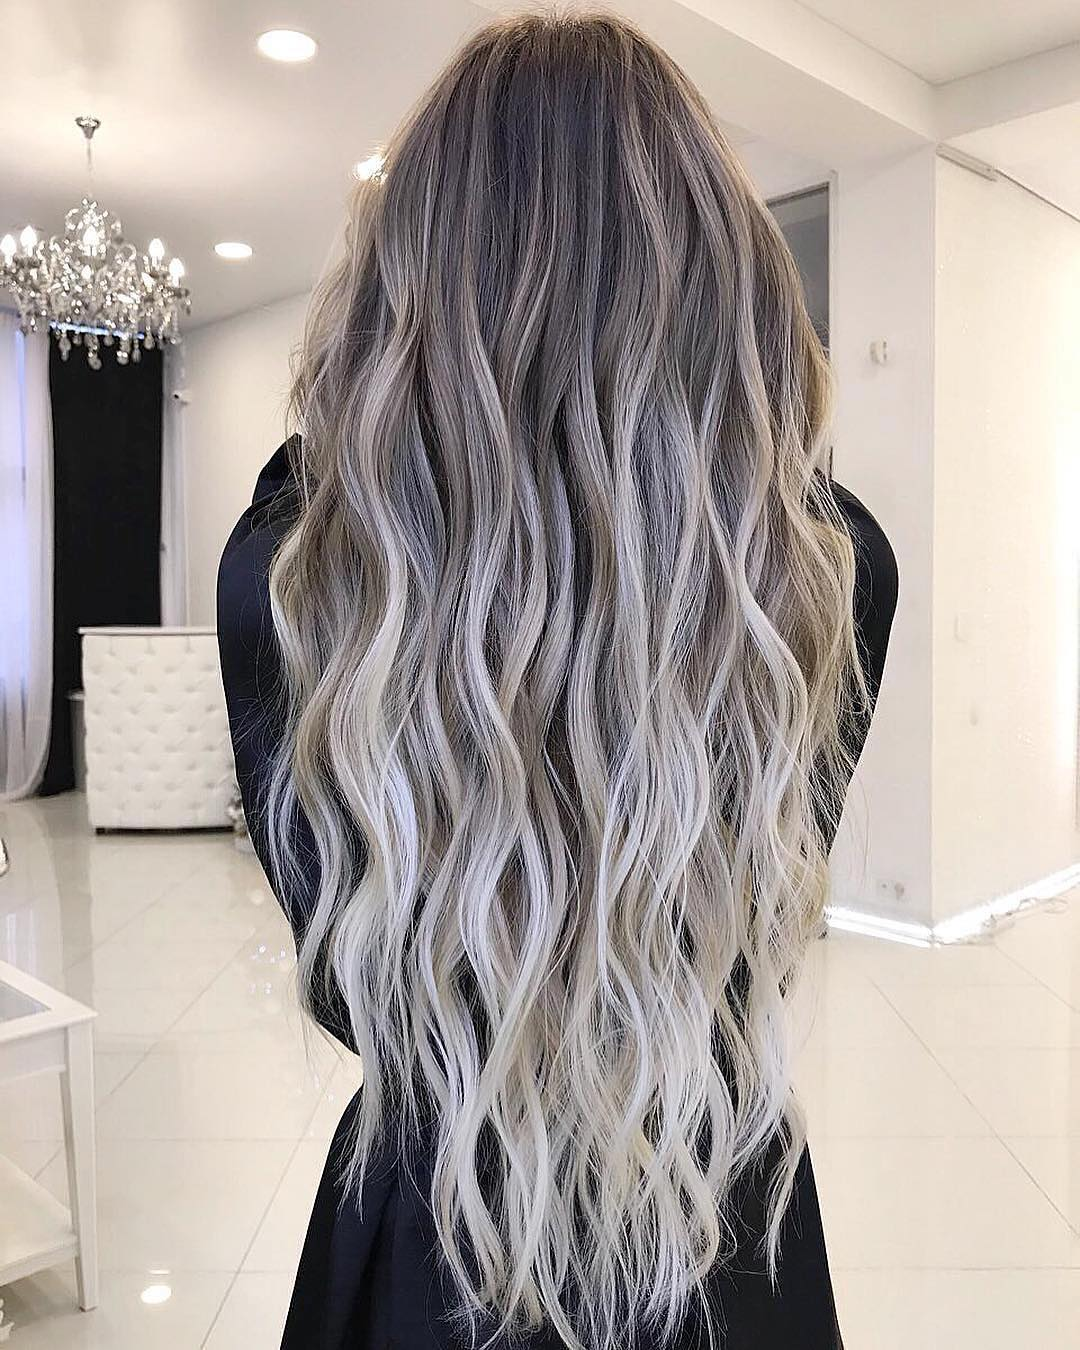 10 balayage ombre long hair styles from subtle to stunning long hair 2019. Black Bedroom Furniture Sets. Home Design Ideas